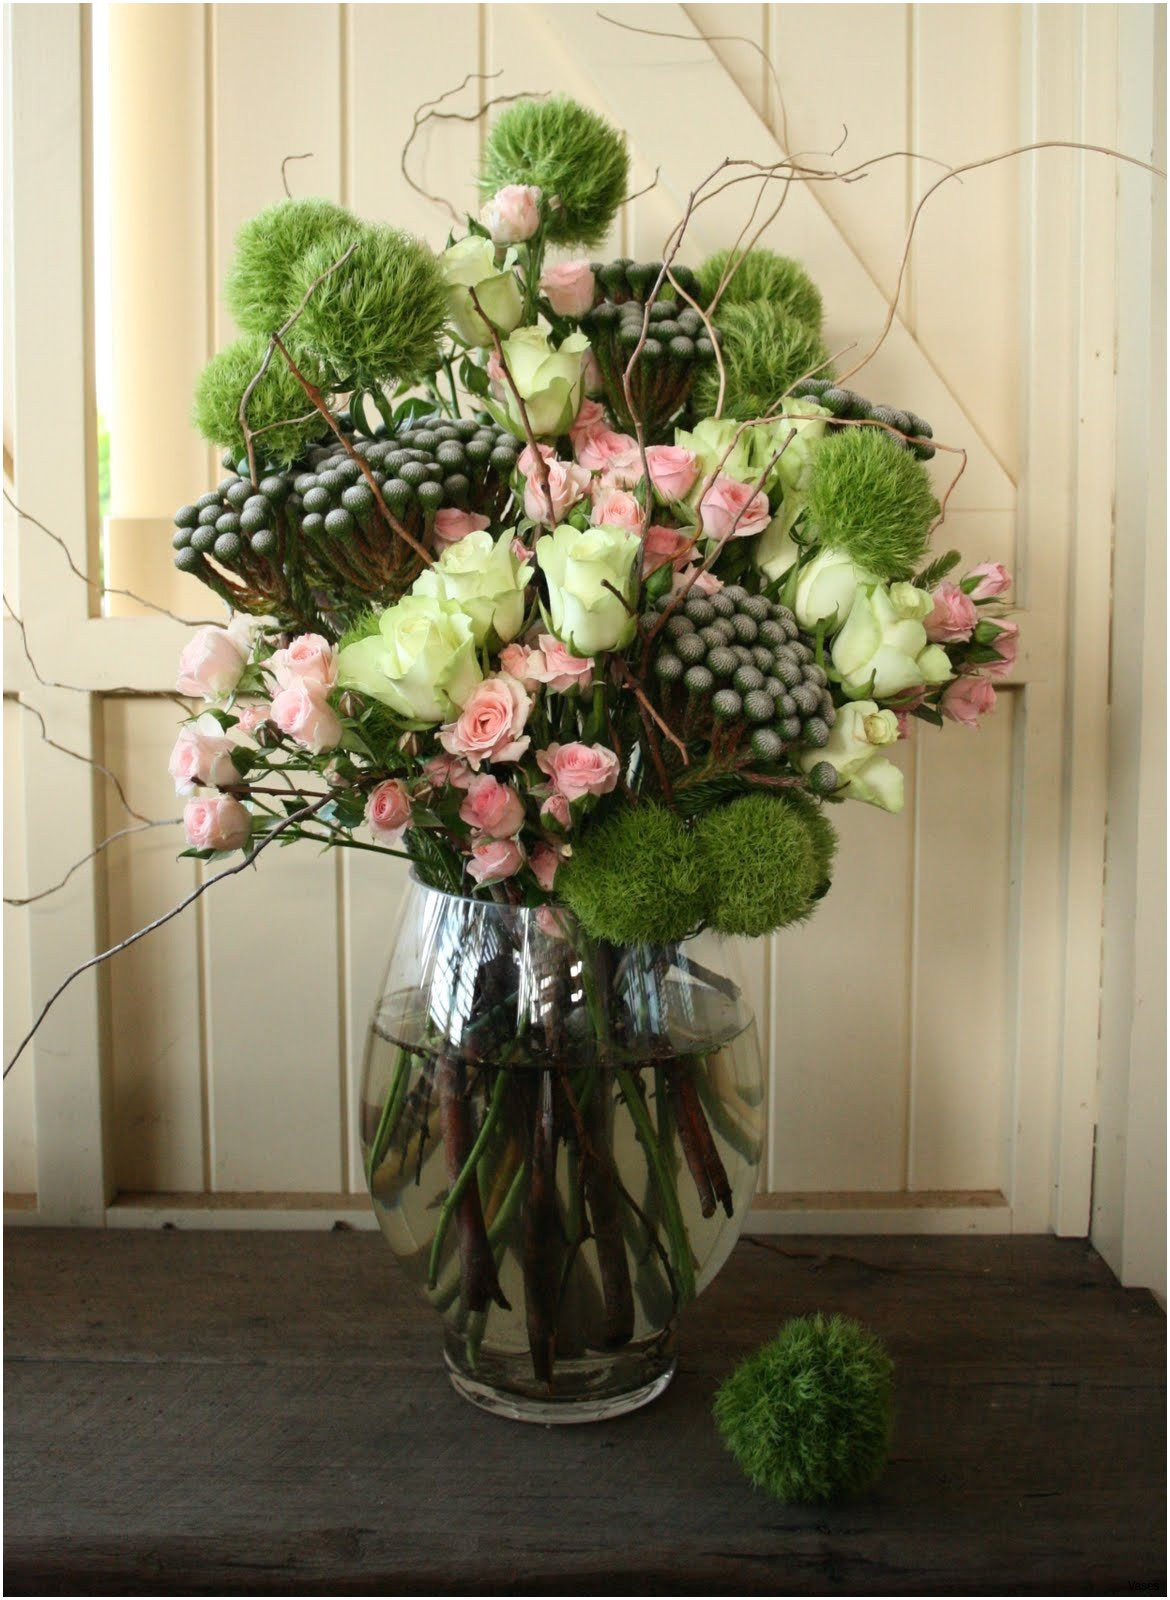 tall lily vase arrangements of flowers in a bowl photograph silk flower bouquets imposing h vases inside flowers in a bowl photograph silk flower bouquets imposing h vases vase flower arrangements i 0d